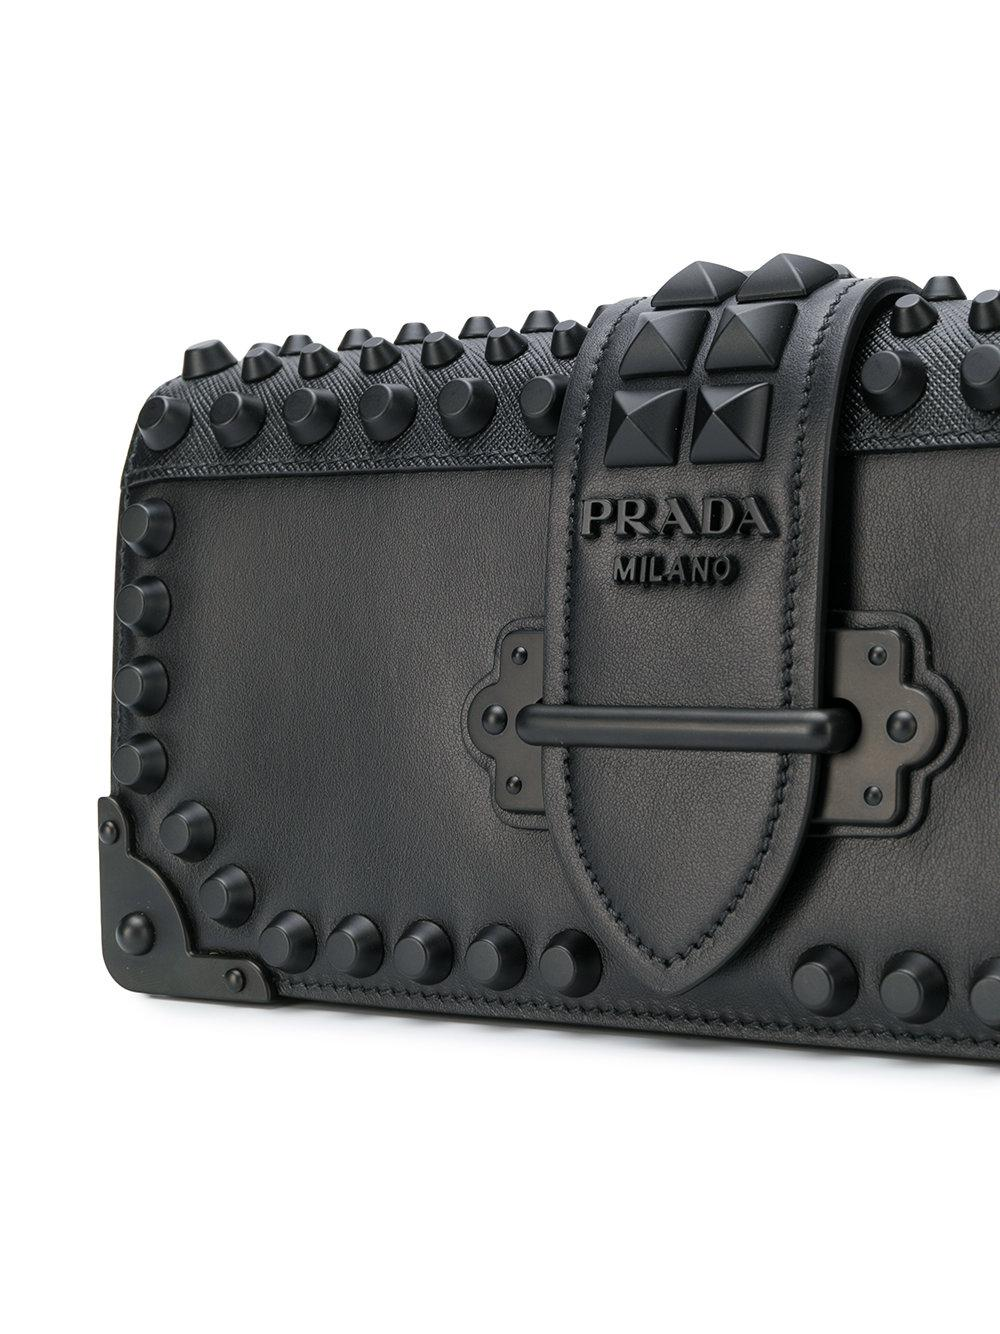 Prada Women's Black Leather Shoulder Bag